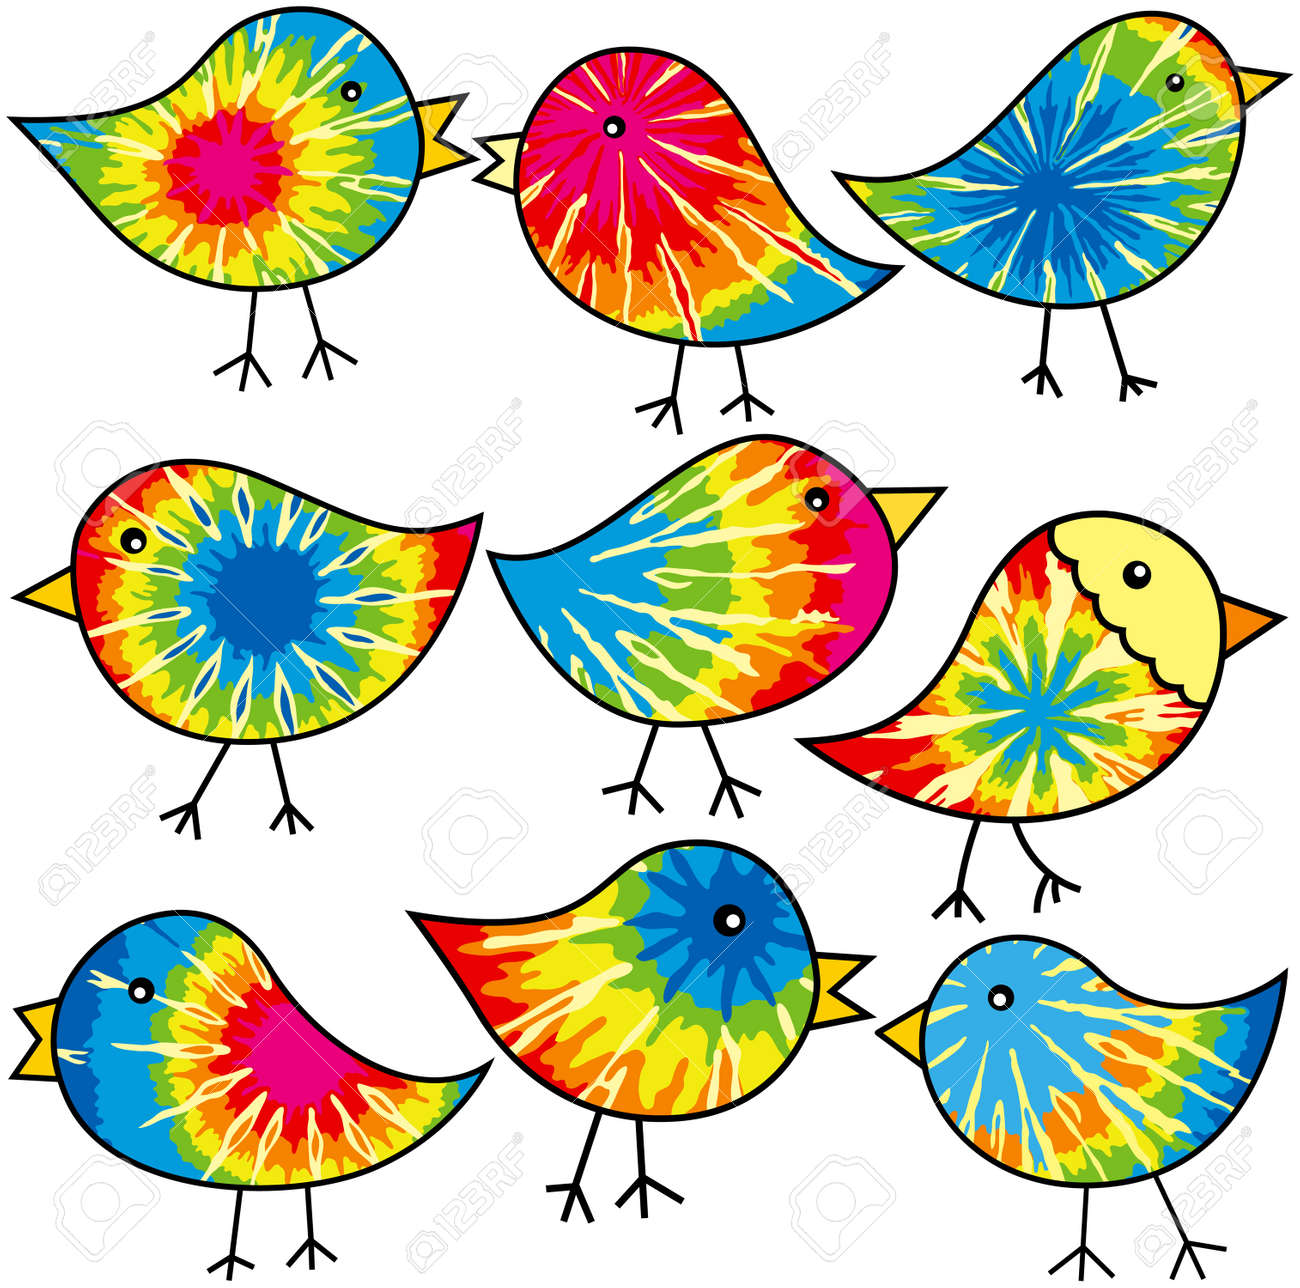 nine colorful tie dyed chicks for your designs royalty free cliparts rh 123rf com tie dye clip art free tie dye clipart